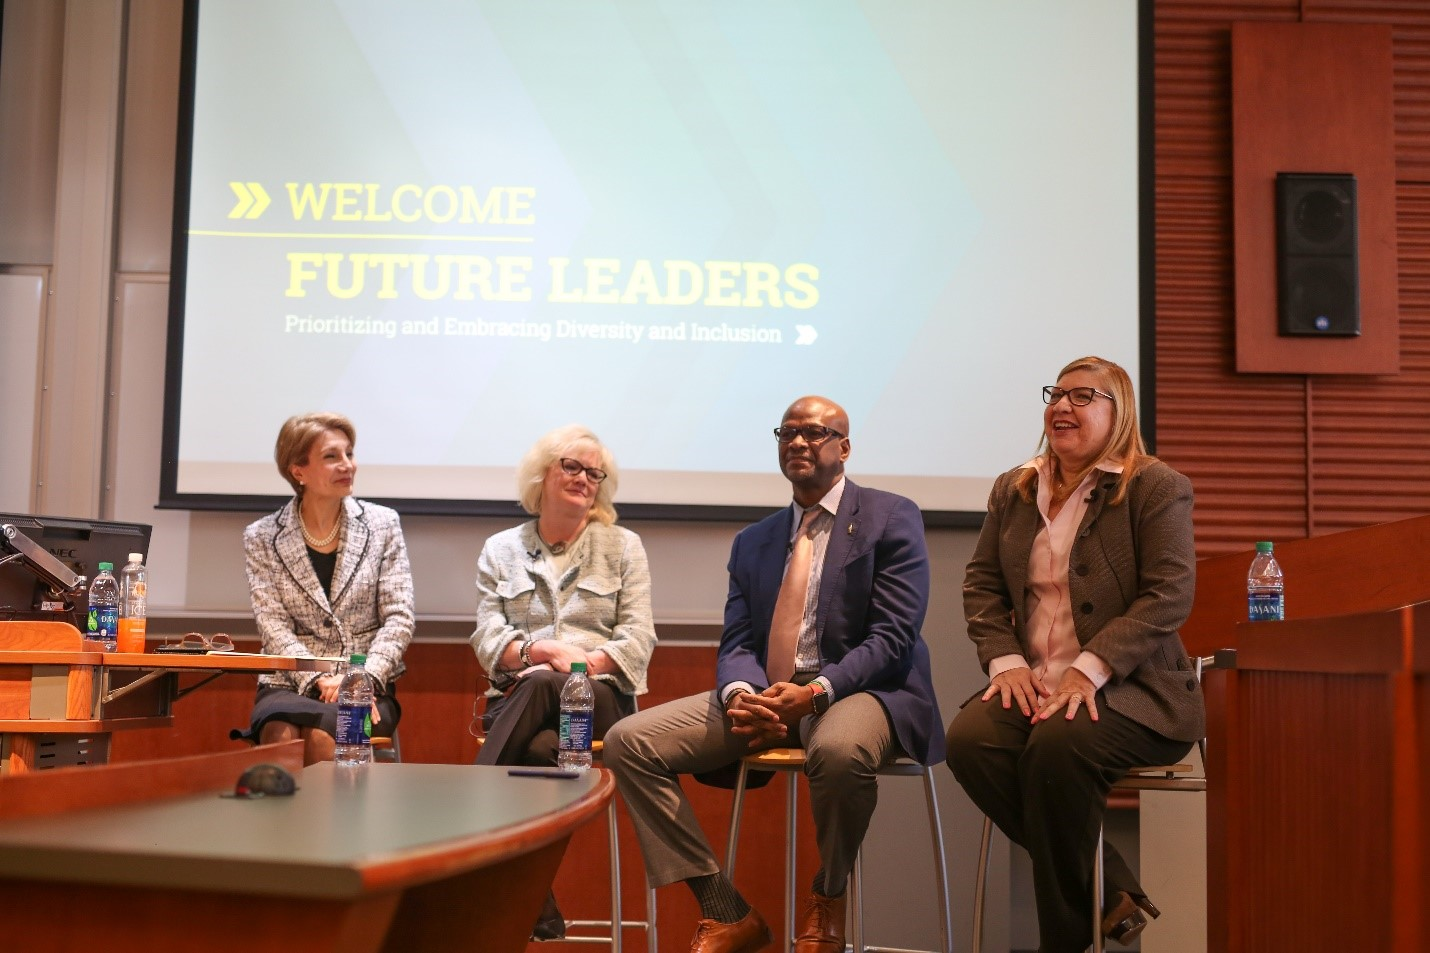 Future Leaders panelists participate in discussion on diversity and inclusion. Left to right: Maryam Alavi, Nancy Sykes, Andrew Davis, and Beatriz Rodriguez.